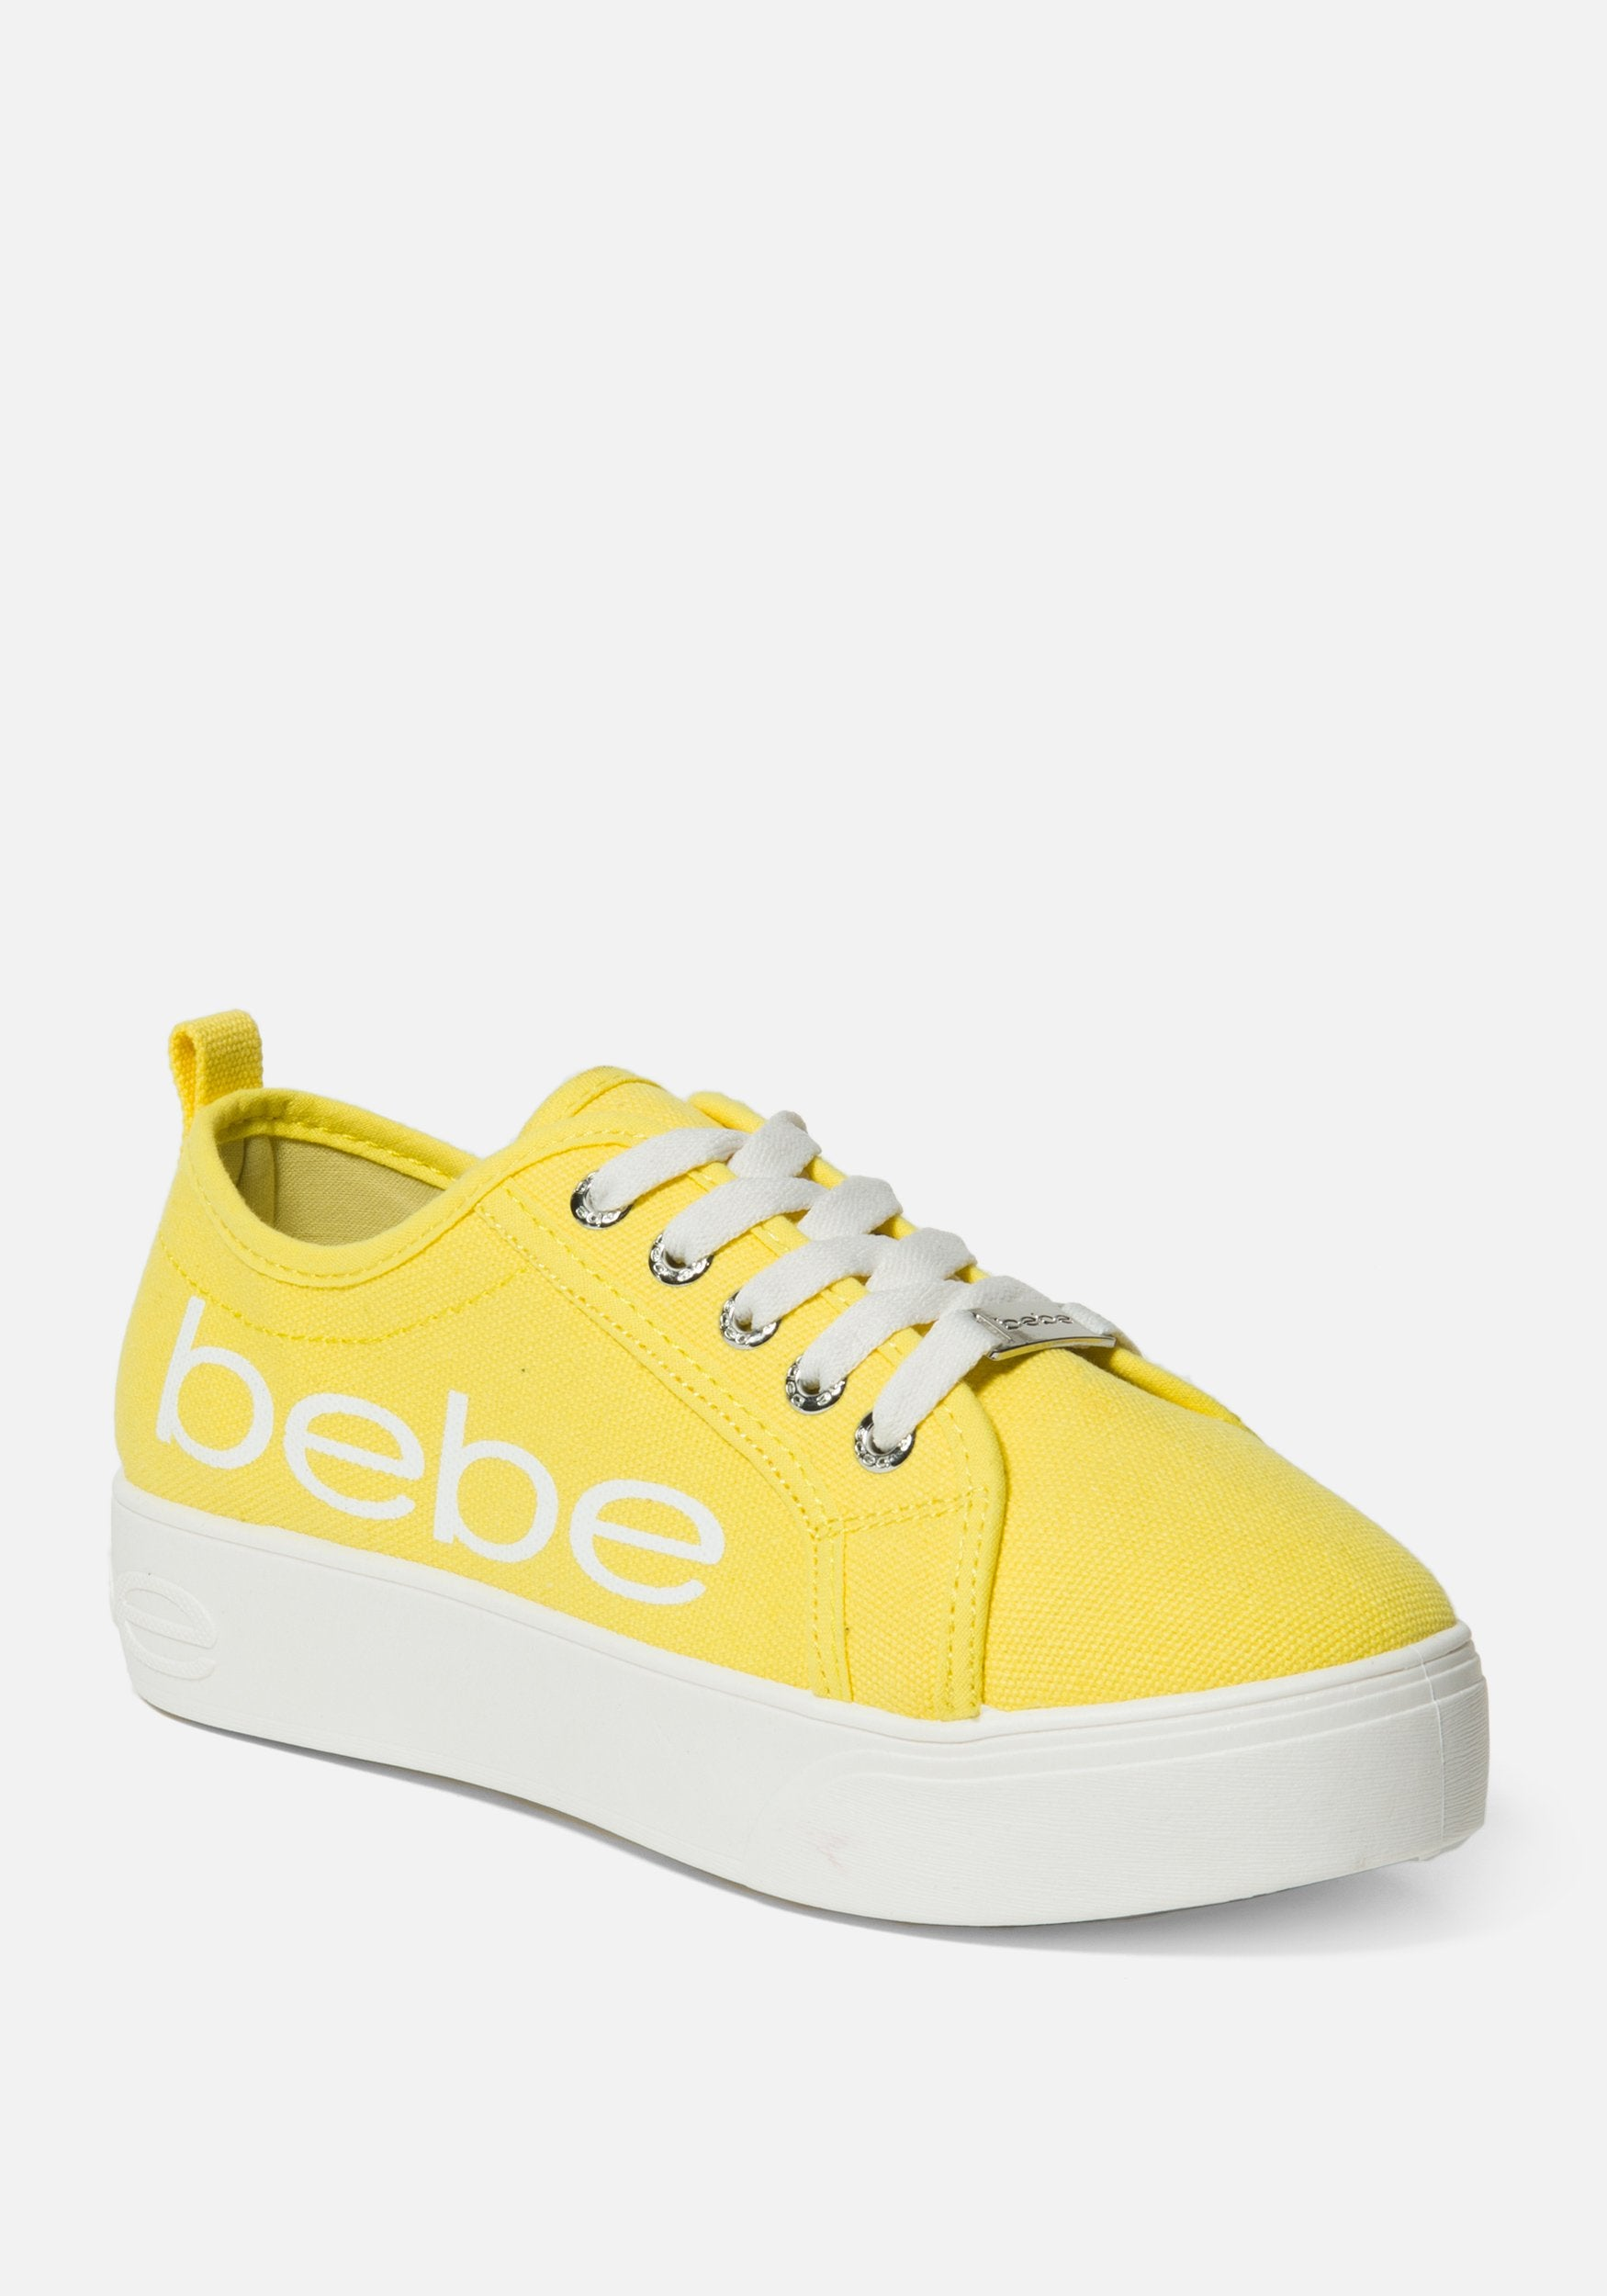 Bebe Women's Destini Platform Sneakers, Size 6 in Yellow Synthetic